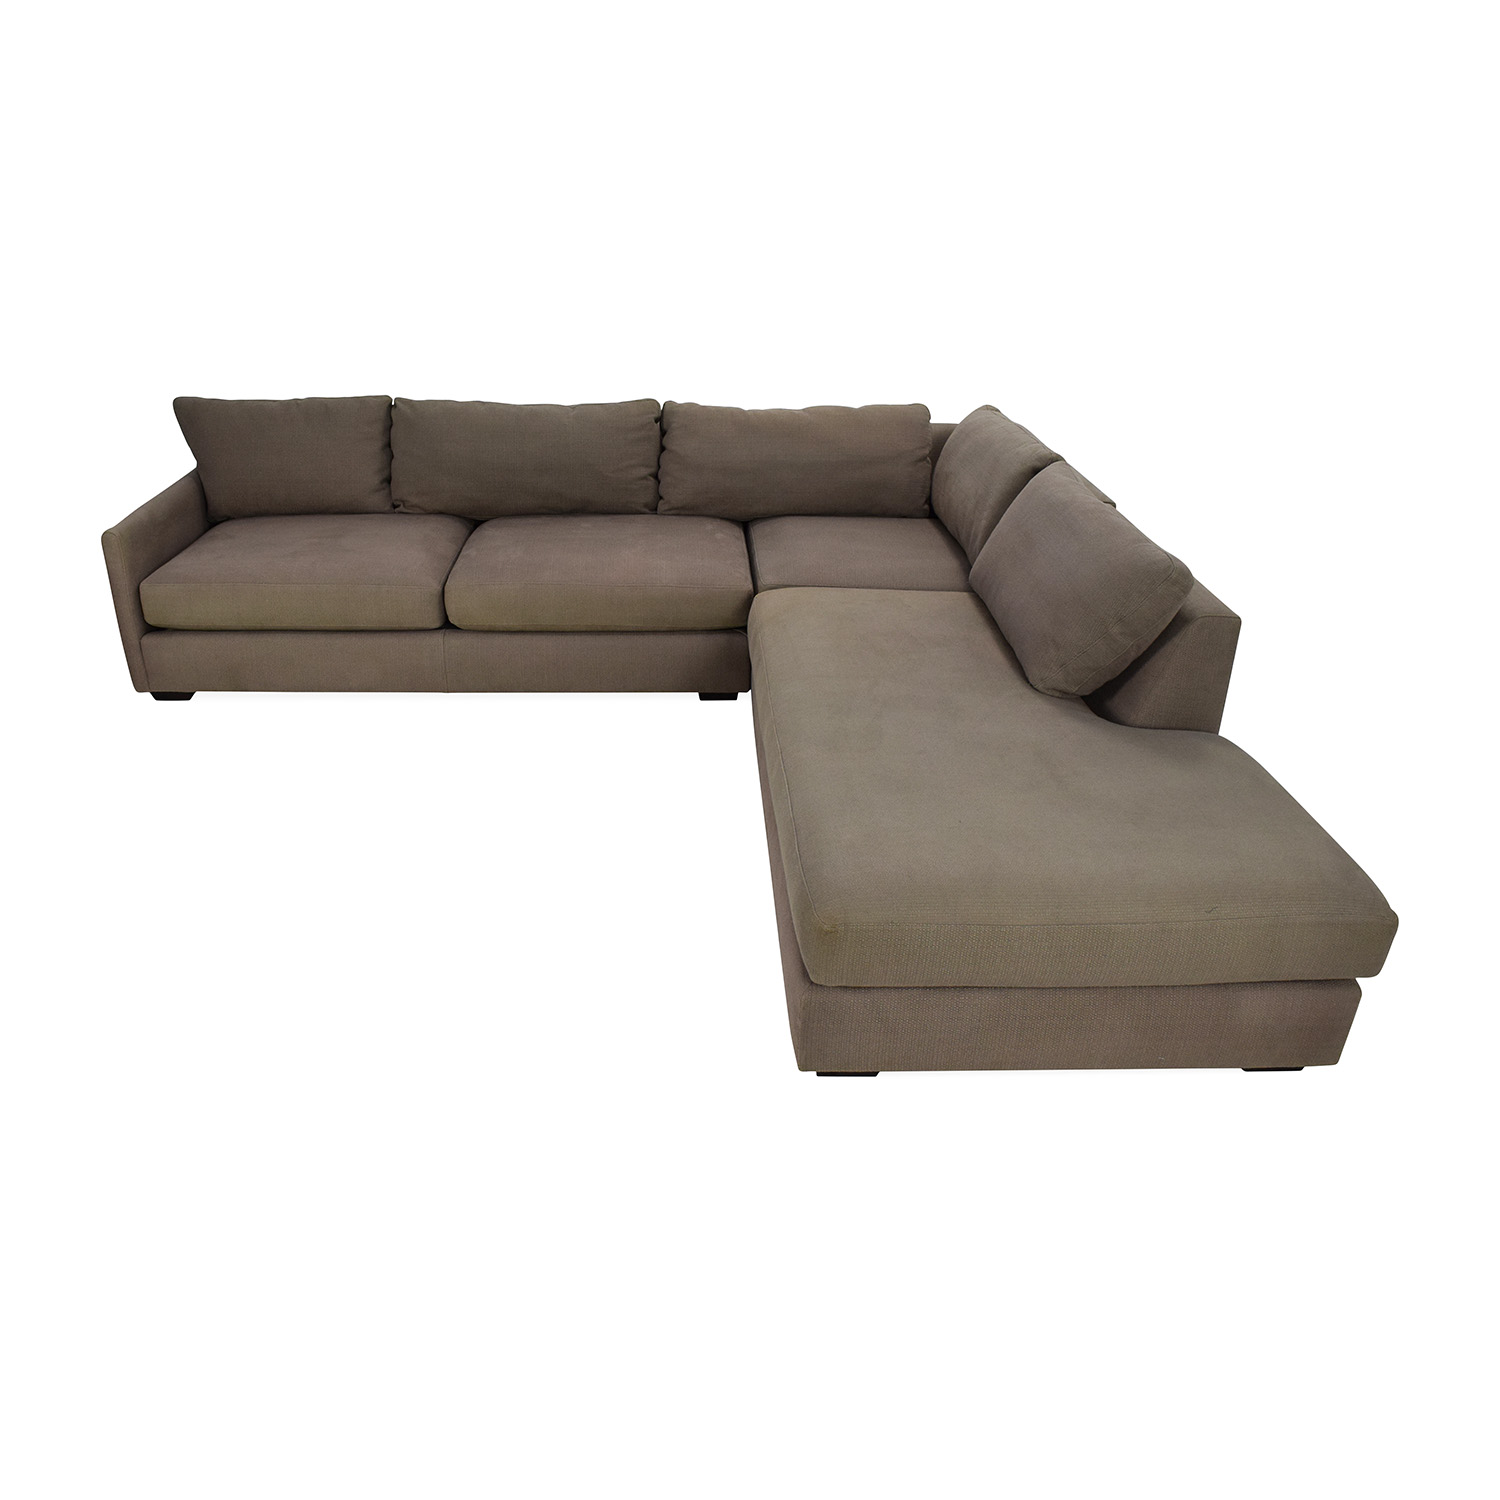 Crate and Barrel Discontinued Furniture | Crate and Barrel Couch | Crate and Barrel L Shaped Couch